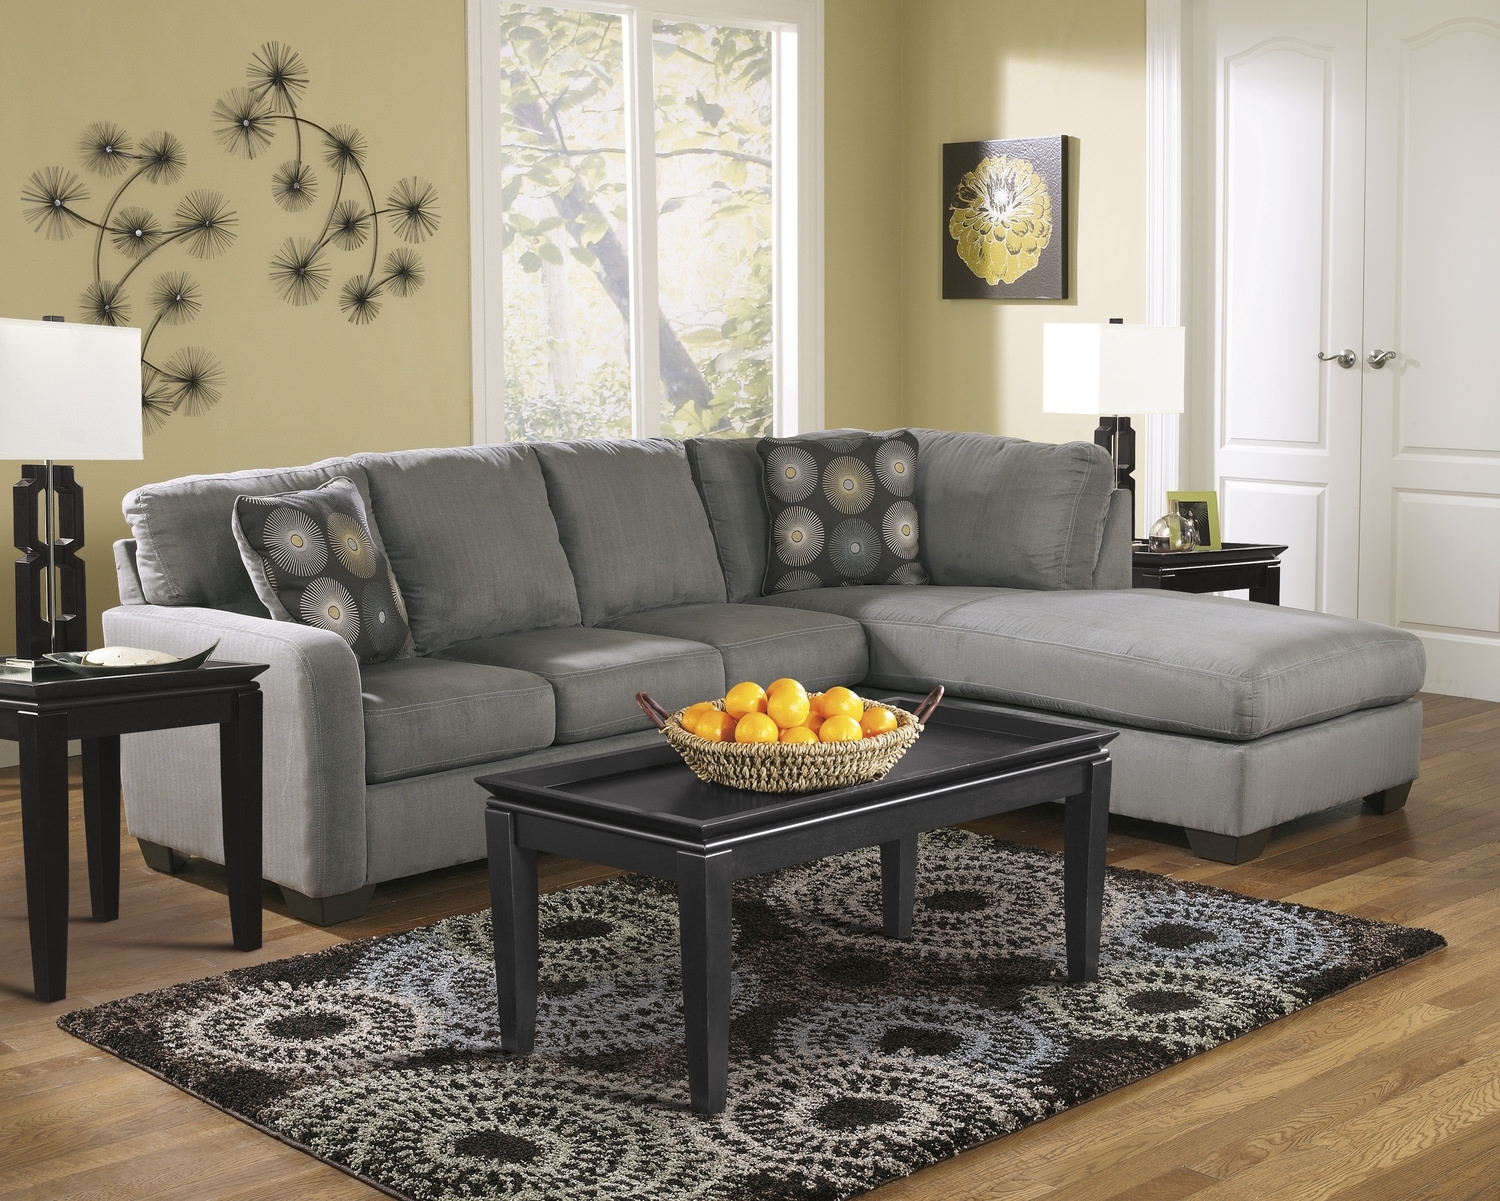 Zella 2 Piece Modular Sectional | Dock86 with regard to Dock 86 Sectional Sofas